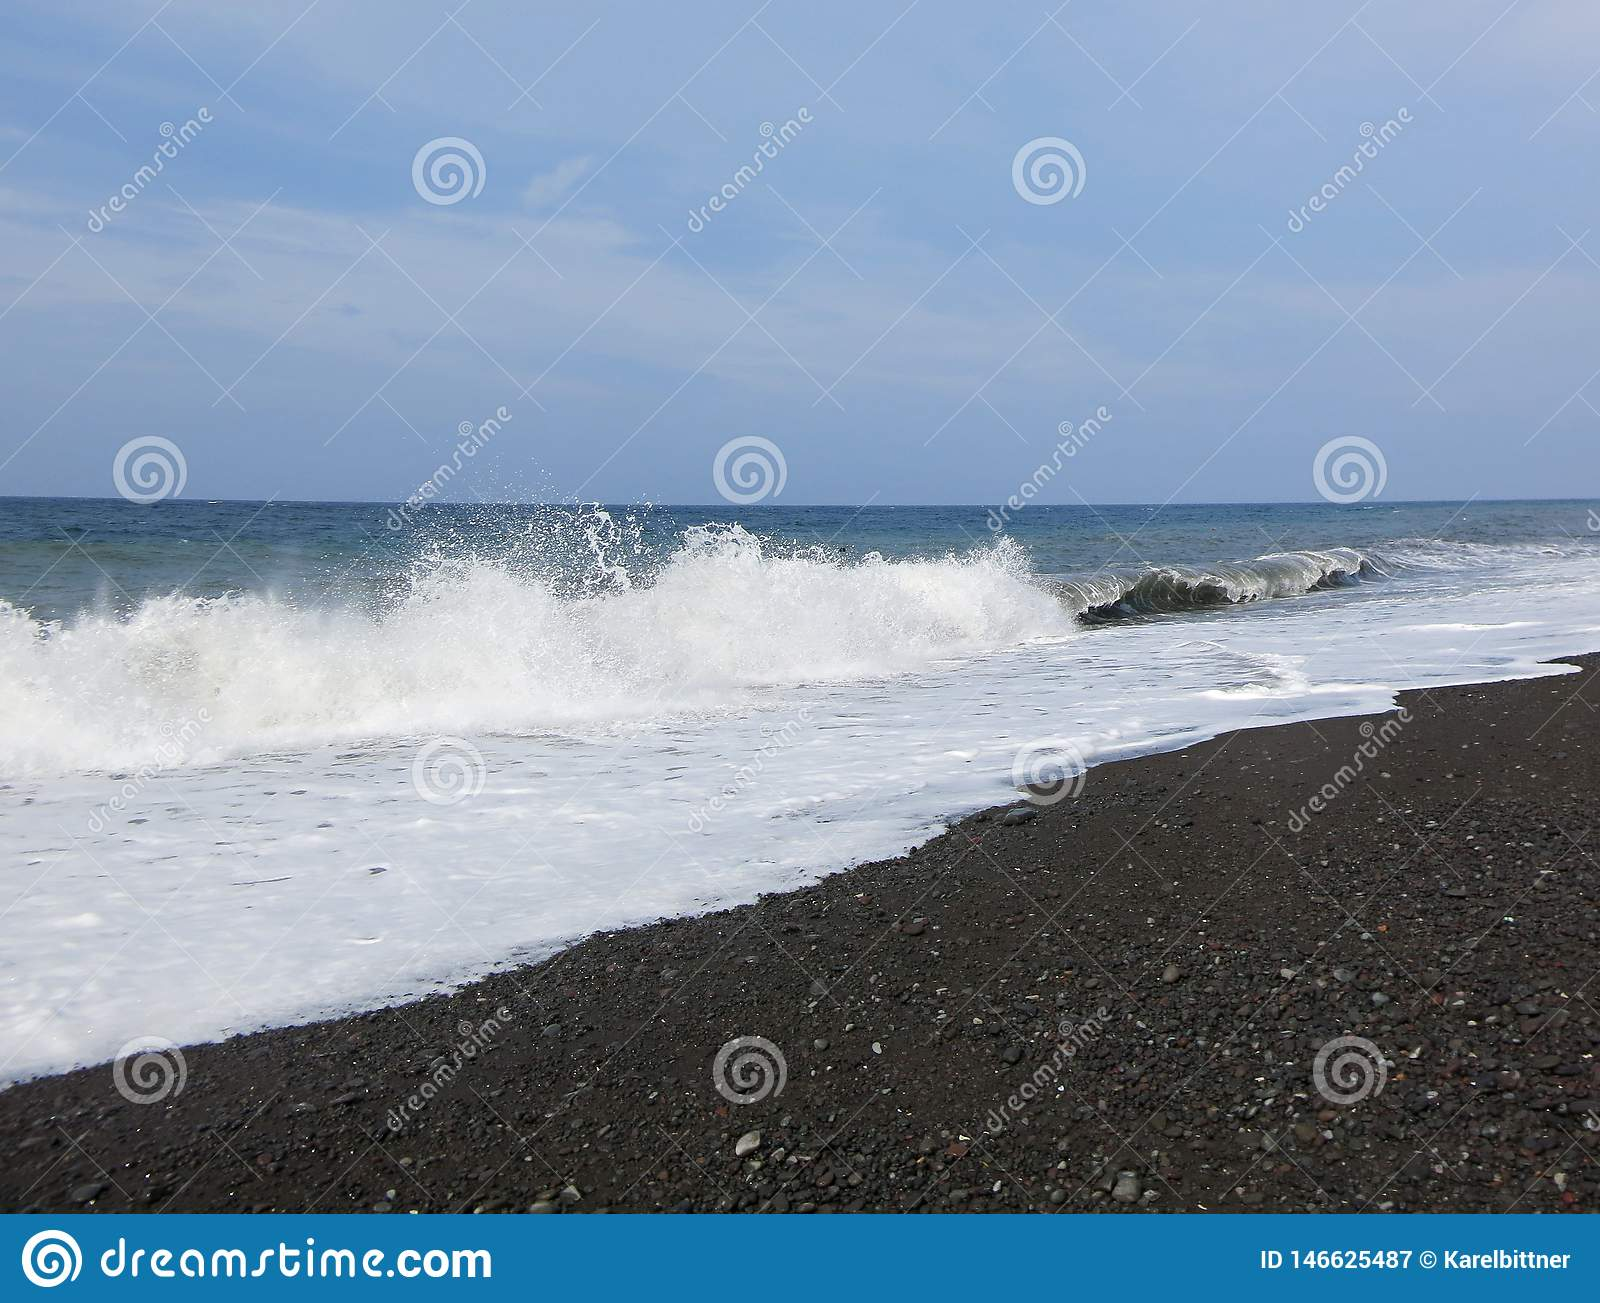 Sea surf and waves crashing onto the beach